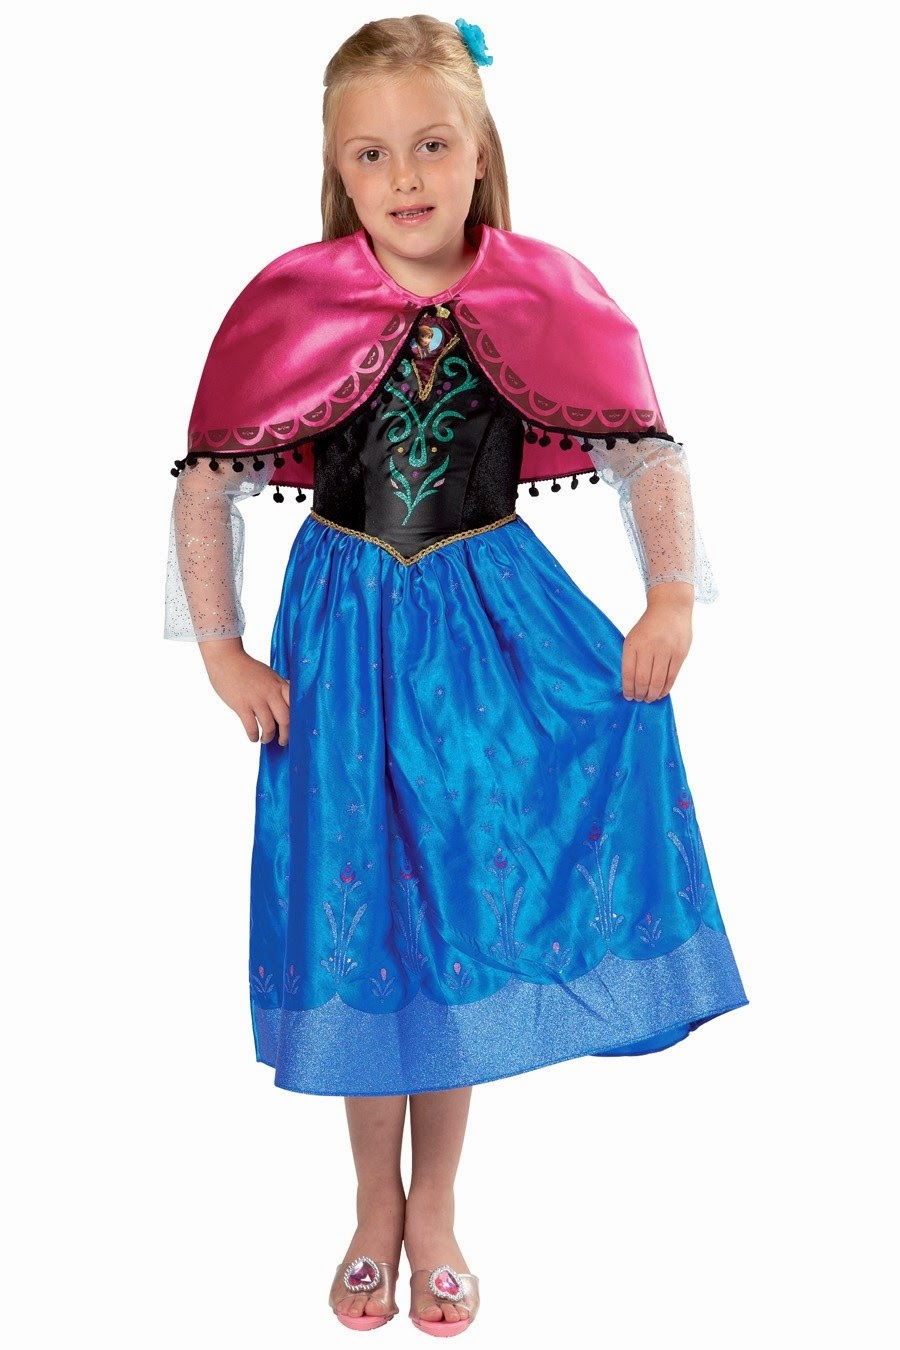 Frozen Luxury Anna Dress-Up